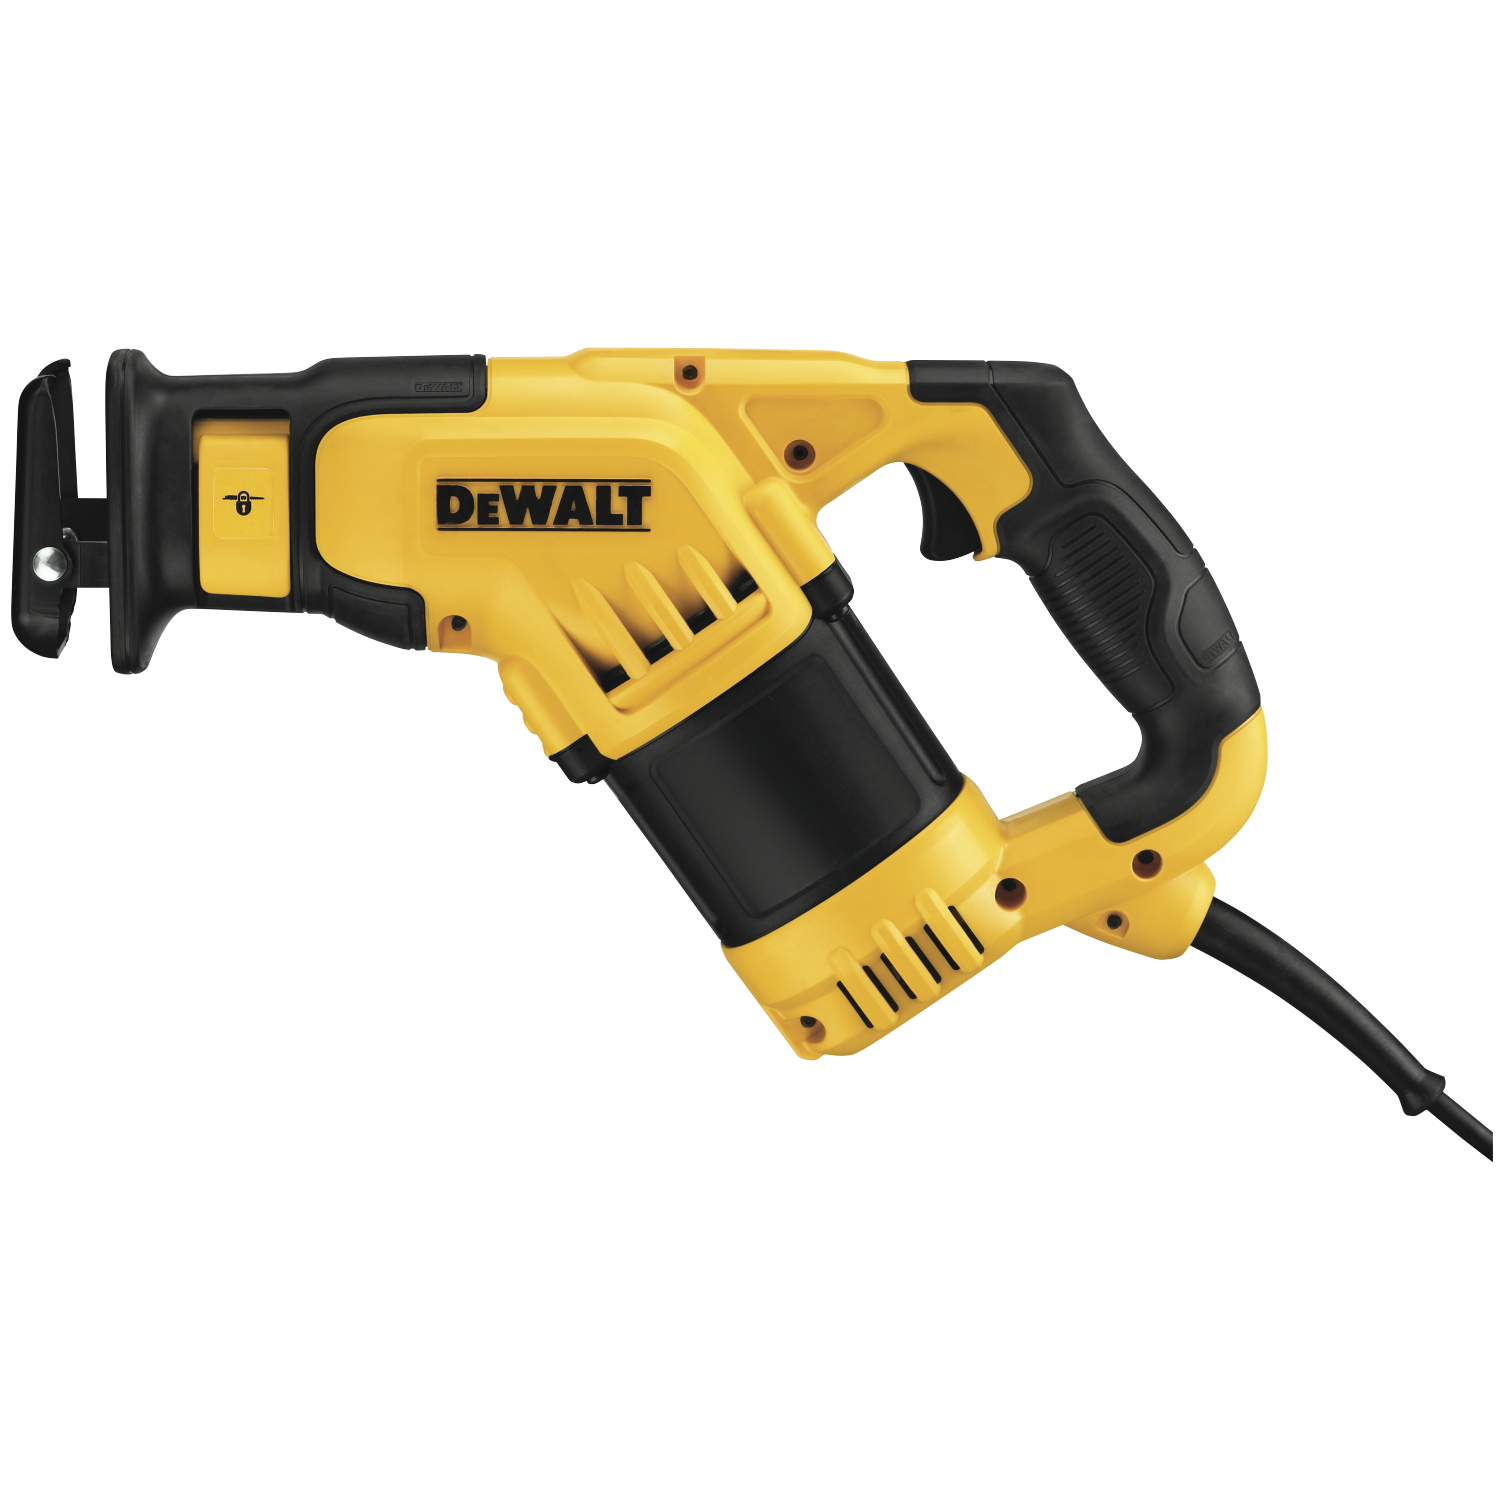 Dewalt dwe357 compact reciprocating saw greentooth Gallery